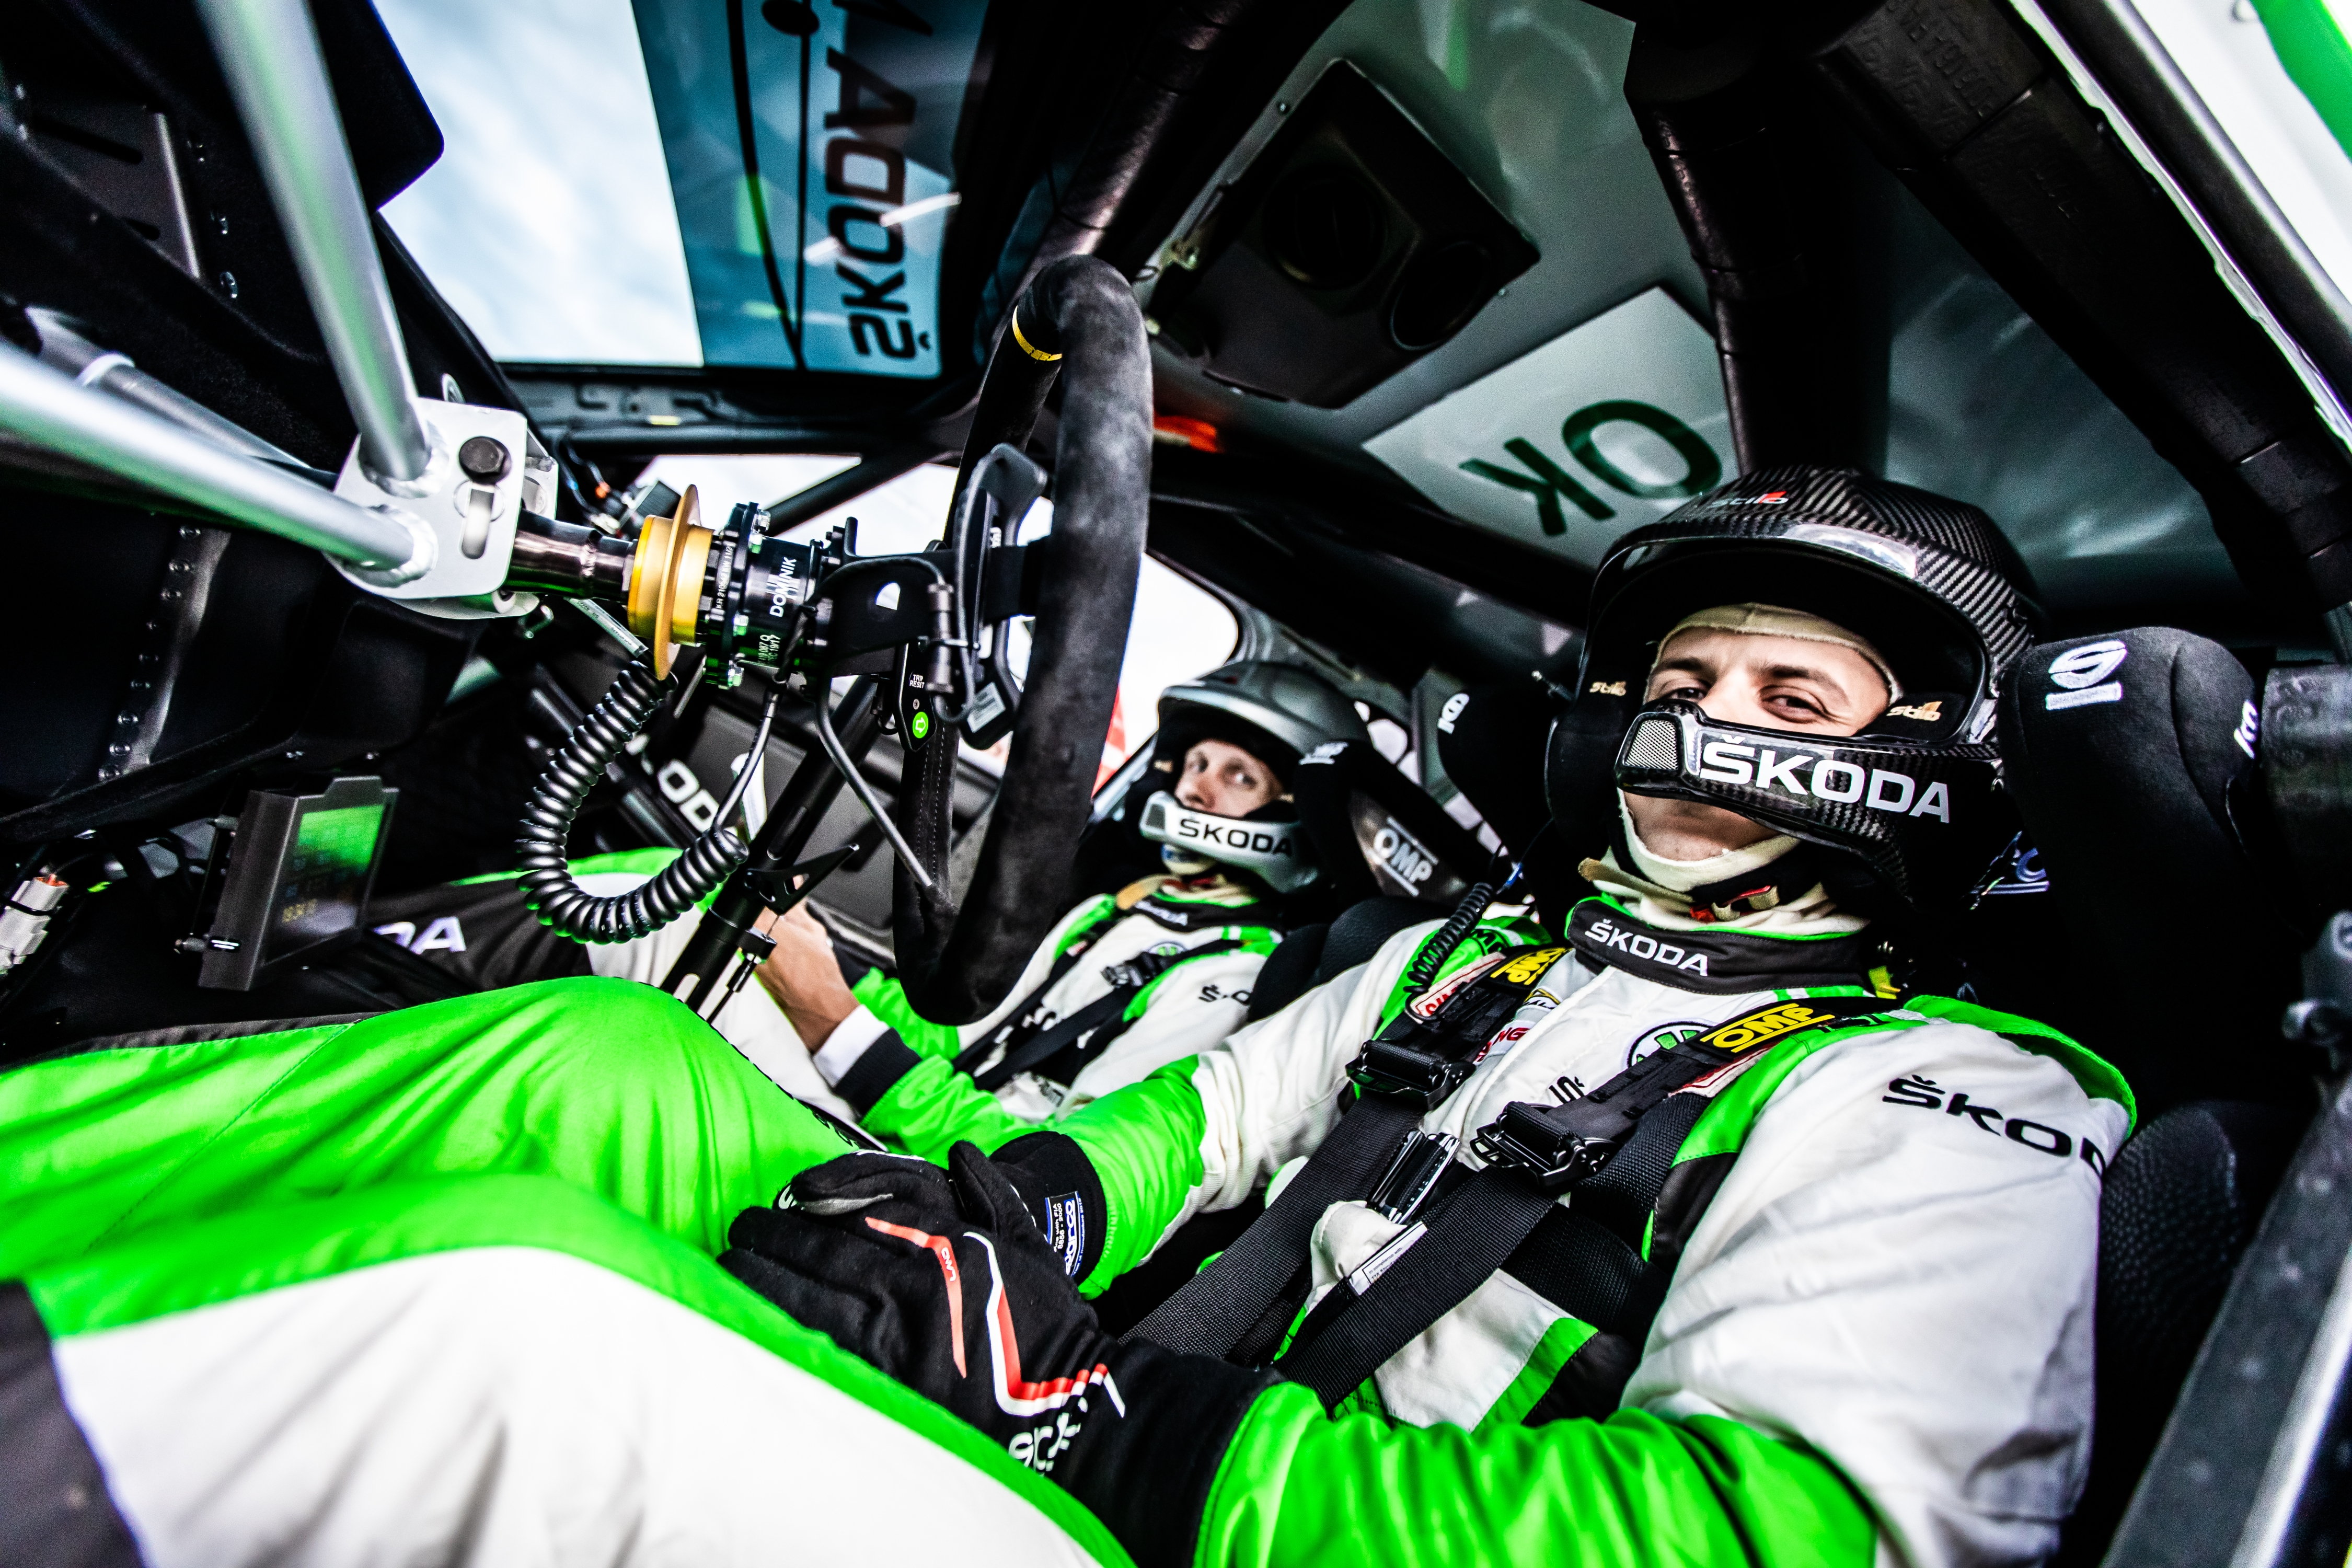 SKODA Motorsport continues to promote young drivers – Dominik Stříteský to debut in FIA World Rally Championship - Image 2